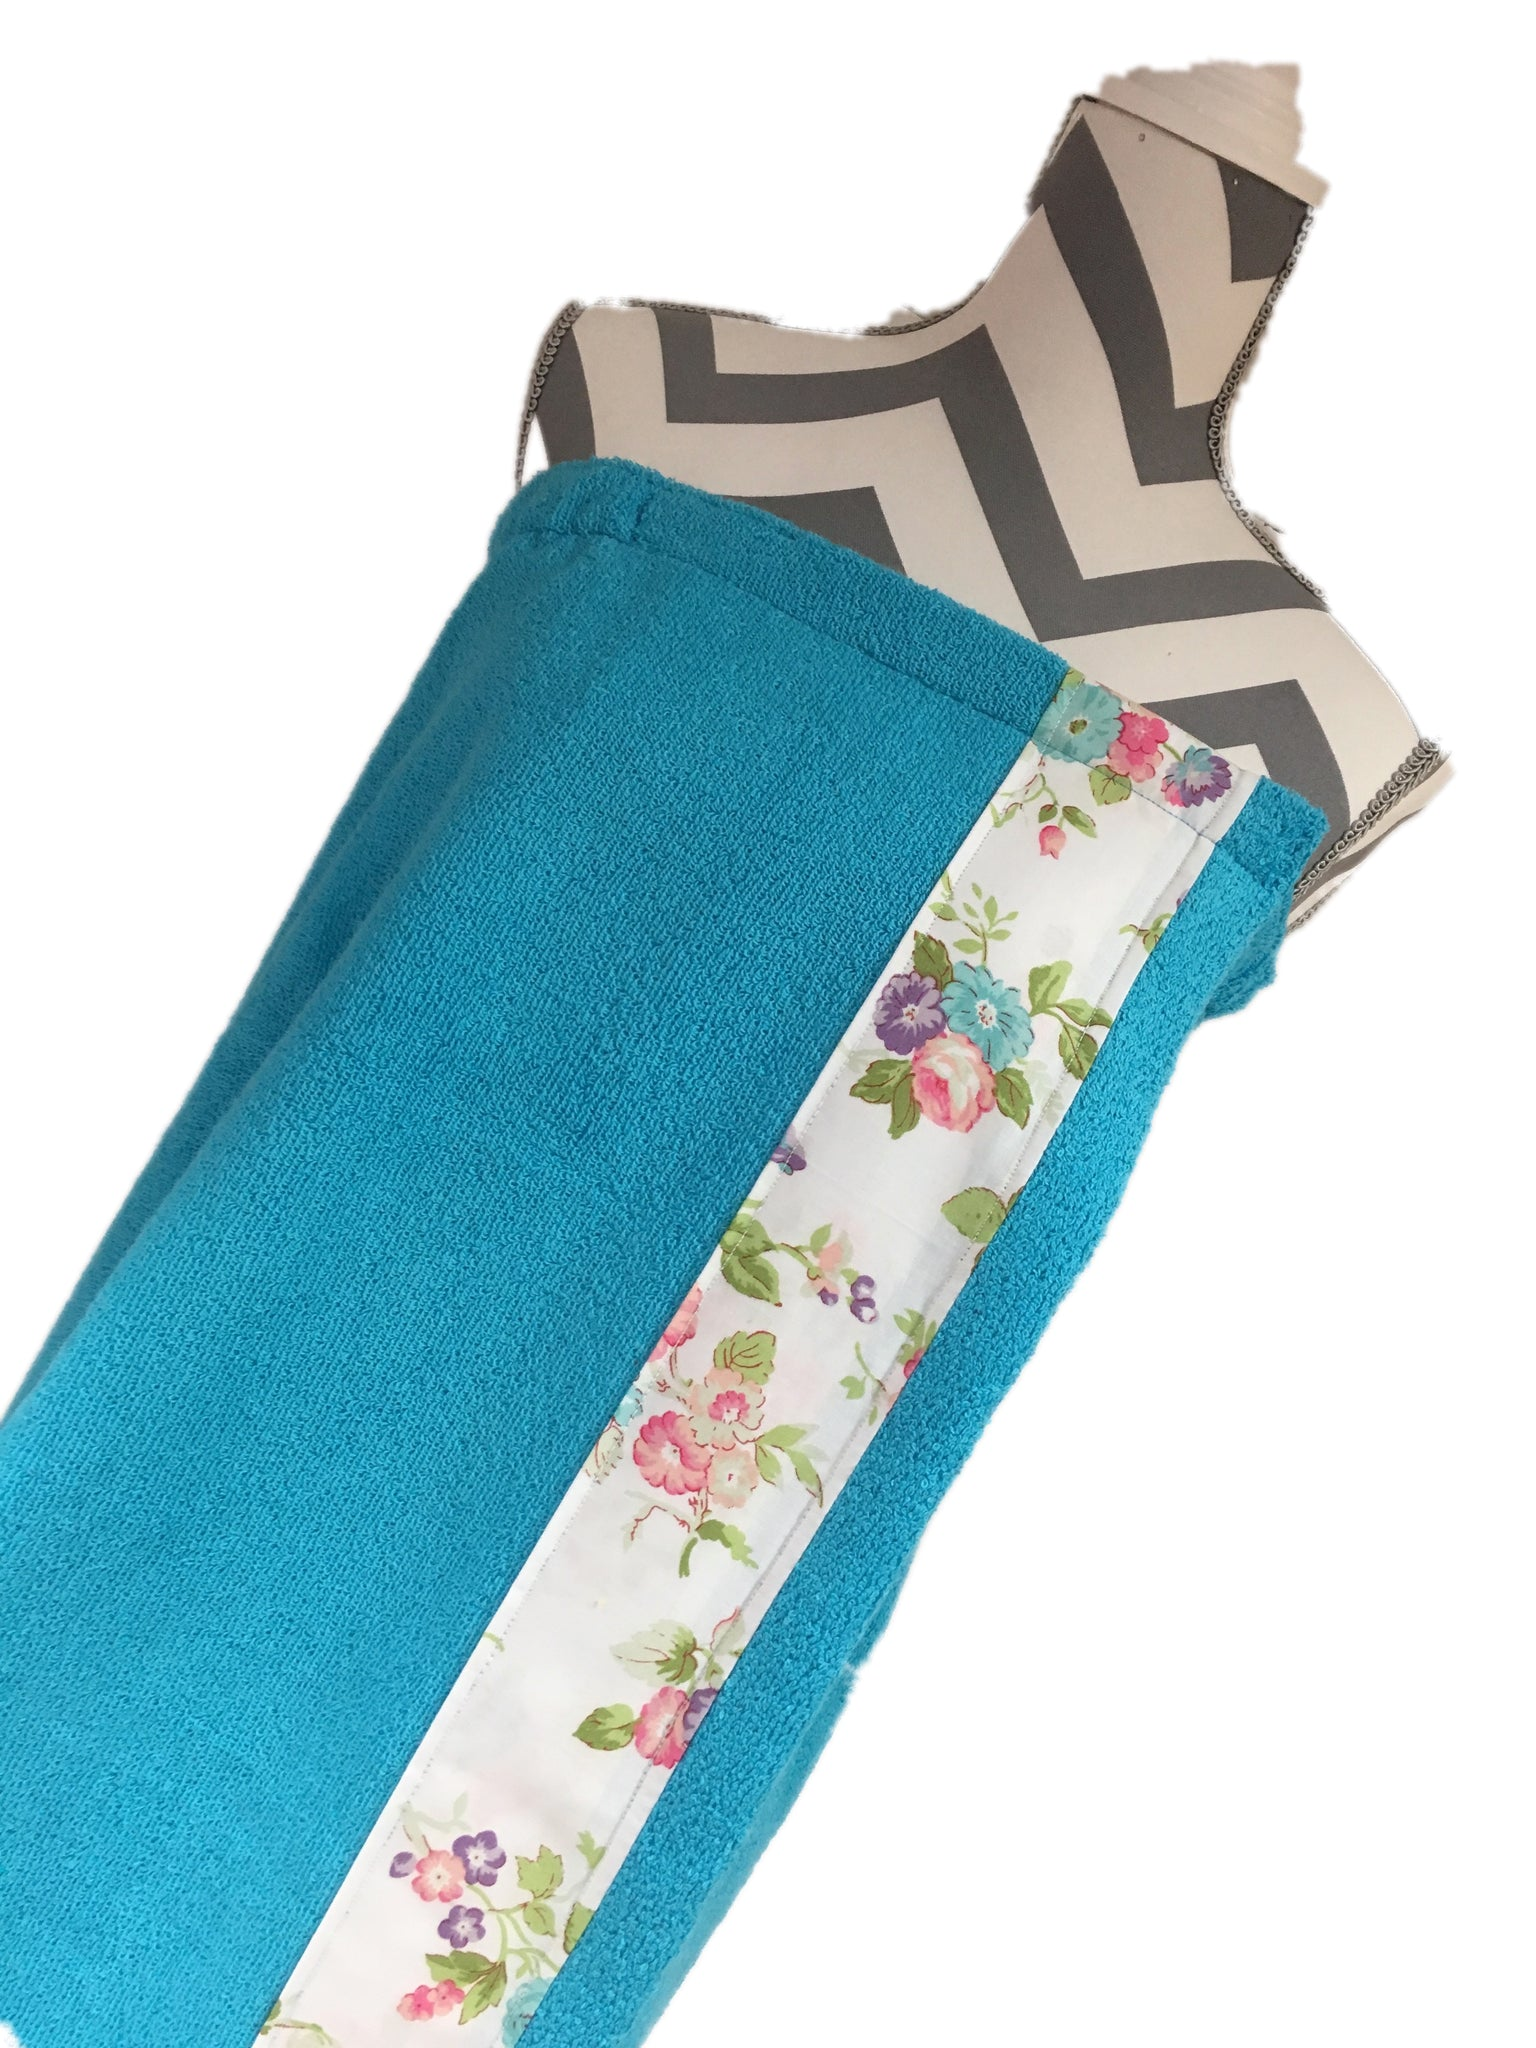 Karen's Garden Aqua Teal Towel Wrap, Personalization available